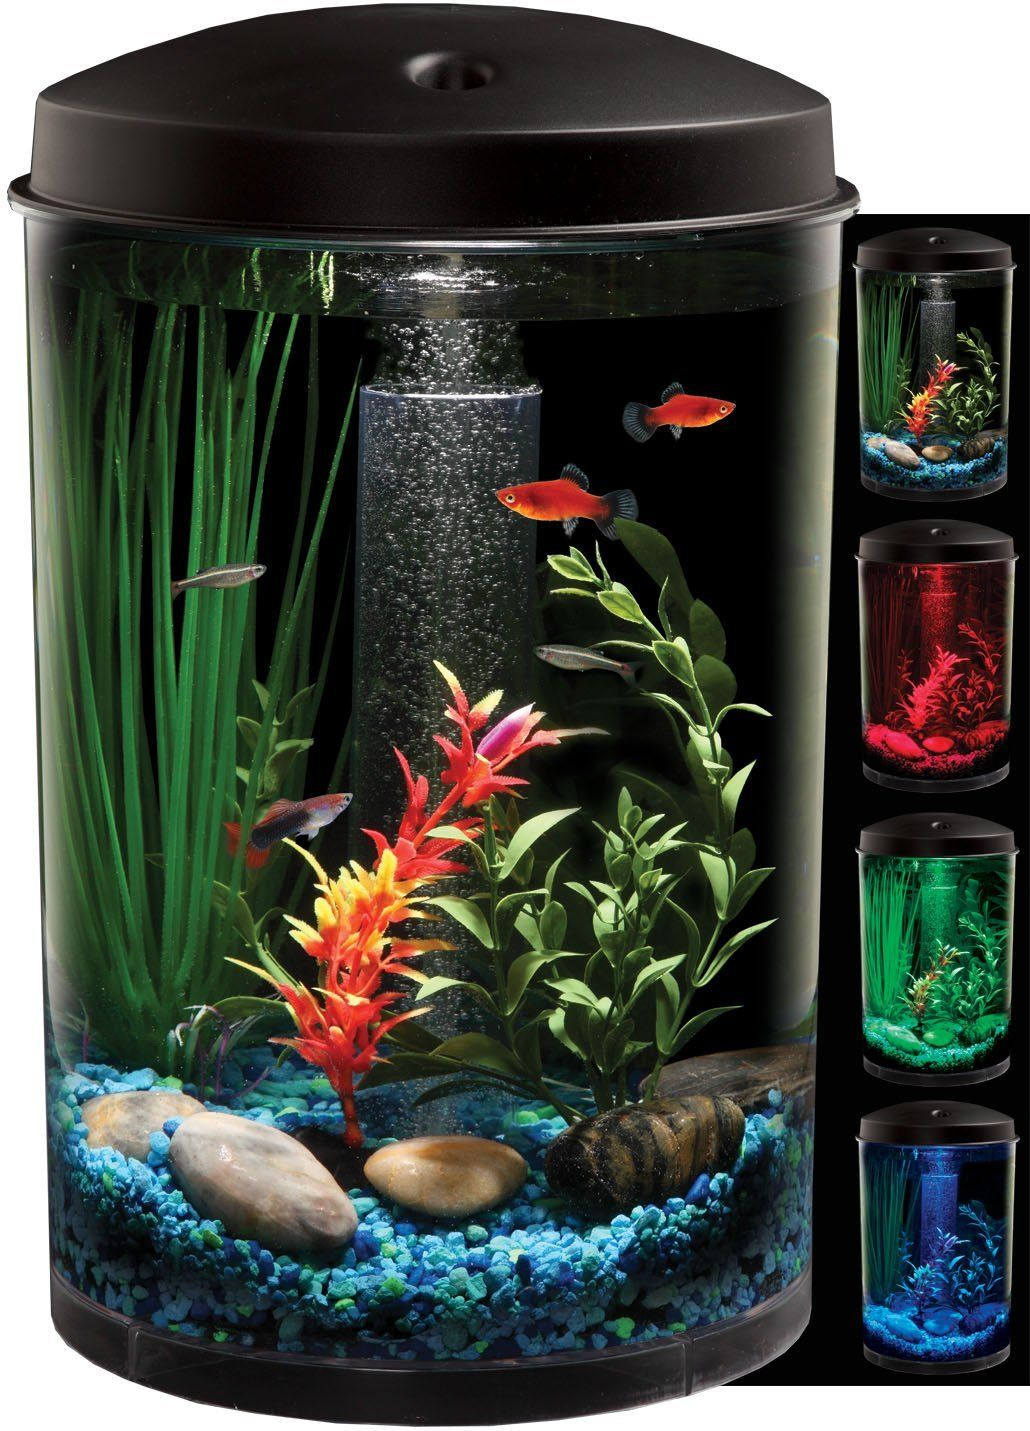 Aquarium fish tank starter kit - Circular Fish Tank Fishtank Aquarium Kit Bowl Fishbowl Aquatic Habitat Filter Go Shop Pet Supplies